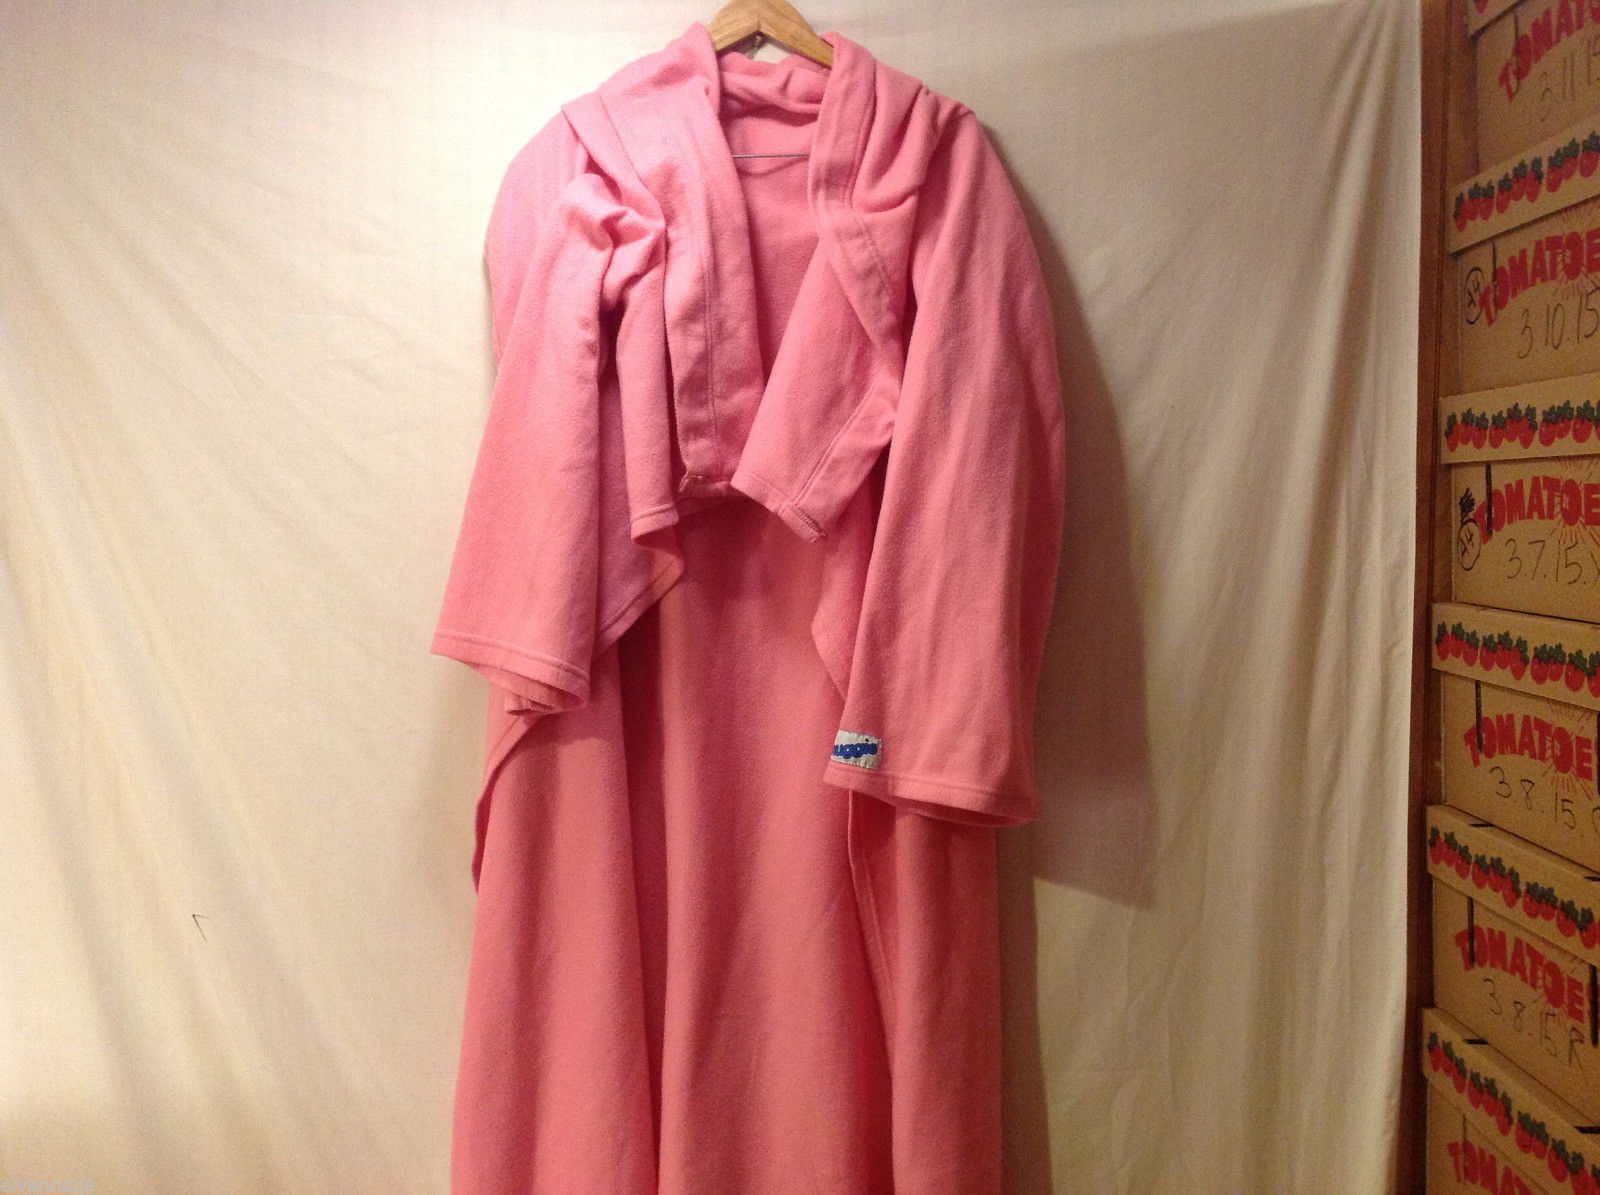 Snuggie Brand 1SZ Robe Bubblegum Pink Roomy Soft Fluffy Fleece-Like Unisex Adult